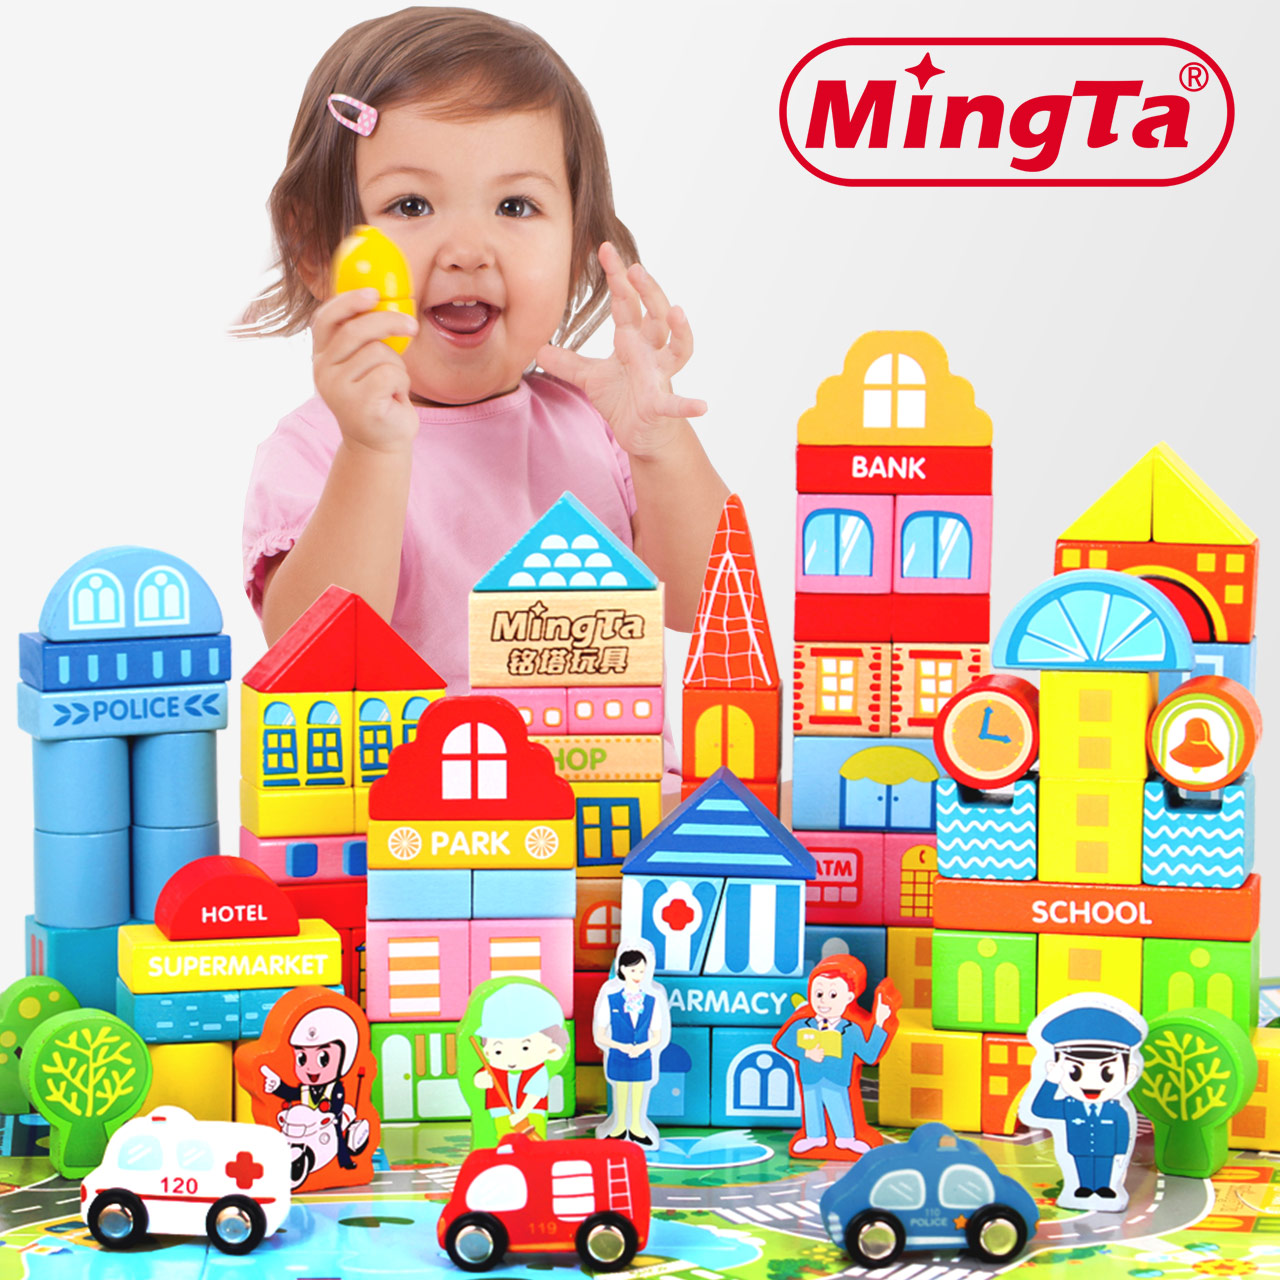 2016 New Baby City Scene Building Blocks Unisex Wooden Toy Bricks Intellectual Enlightenment Children Toys 168Pcs/Lot(China (Mainland))